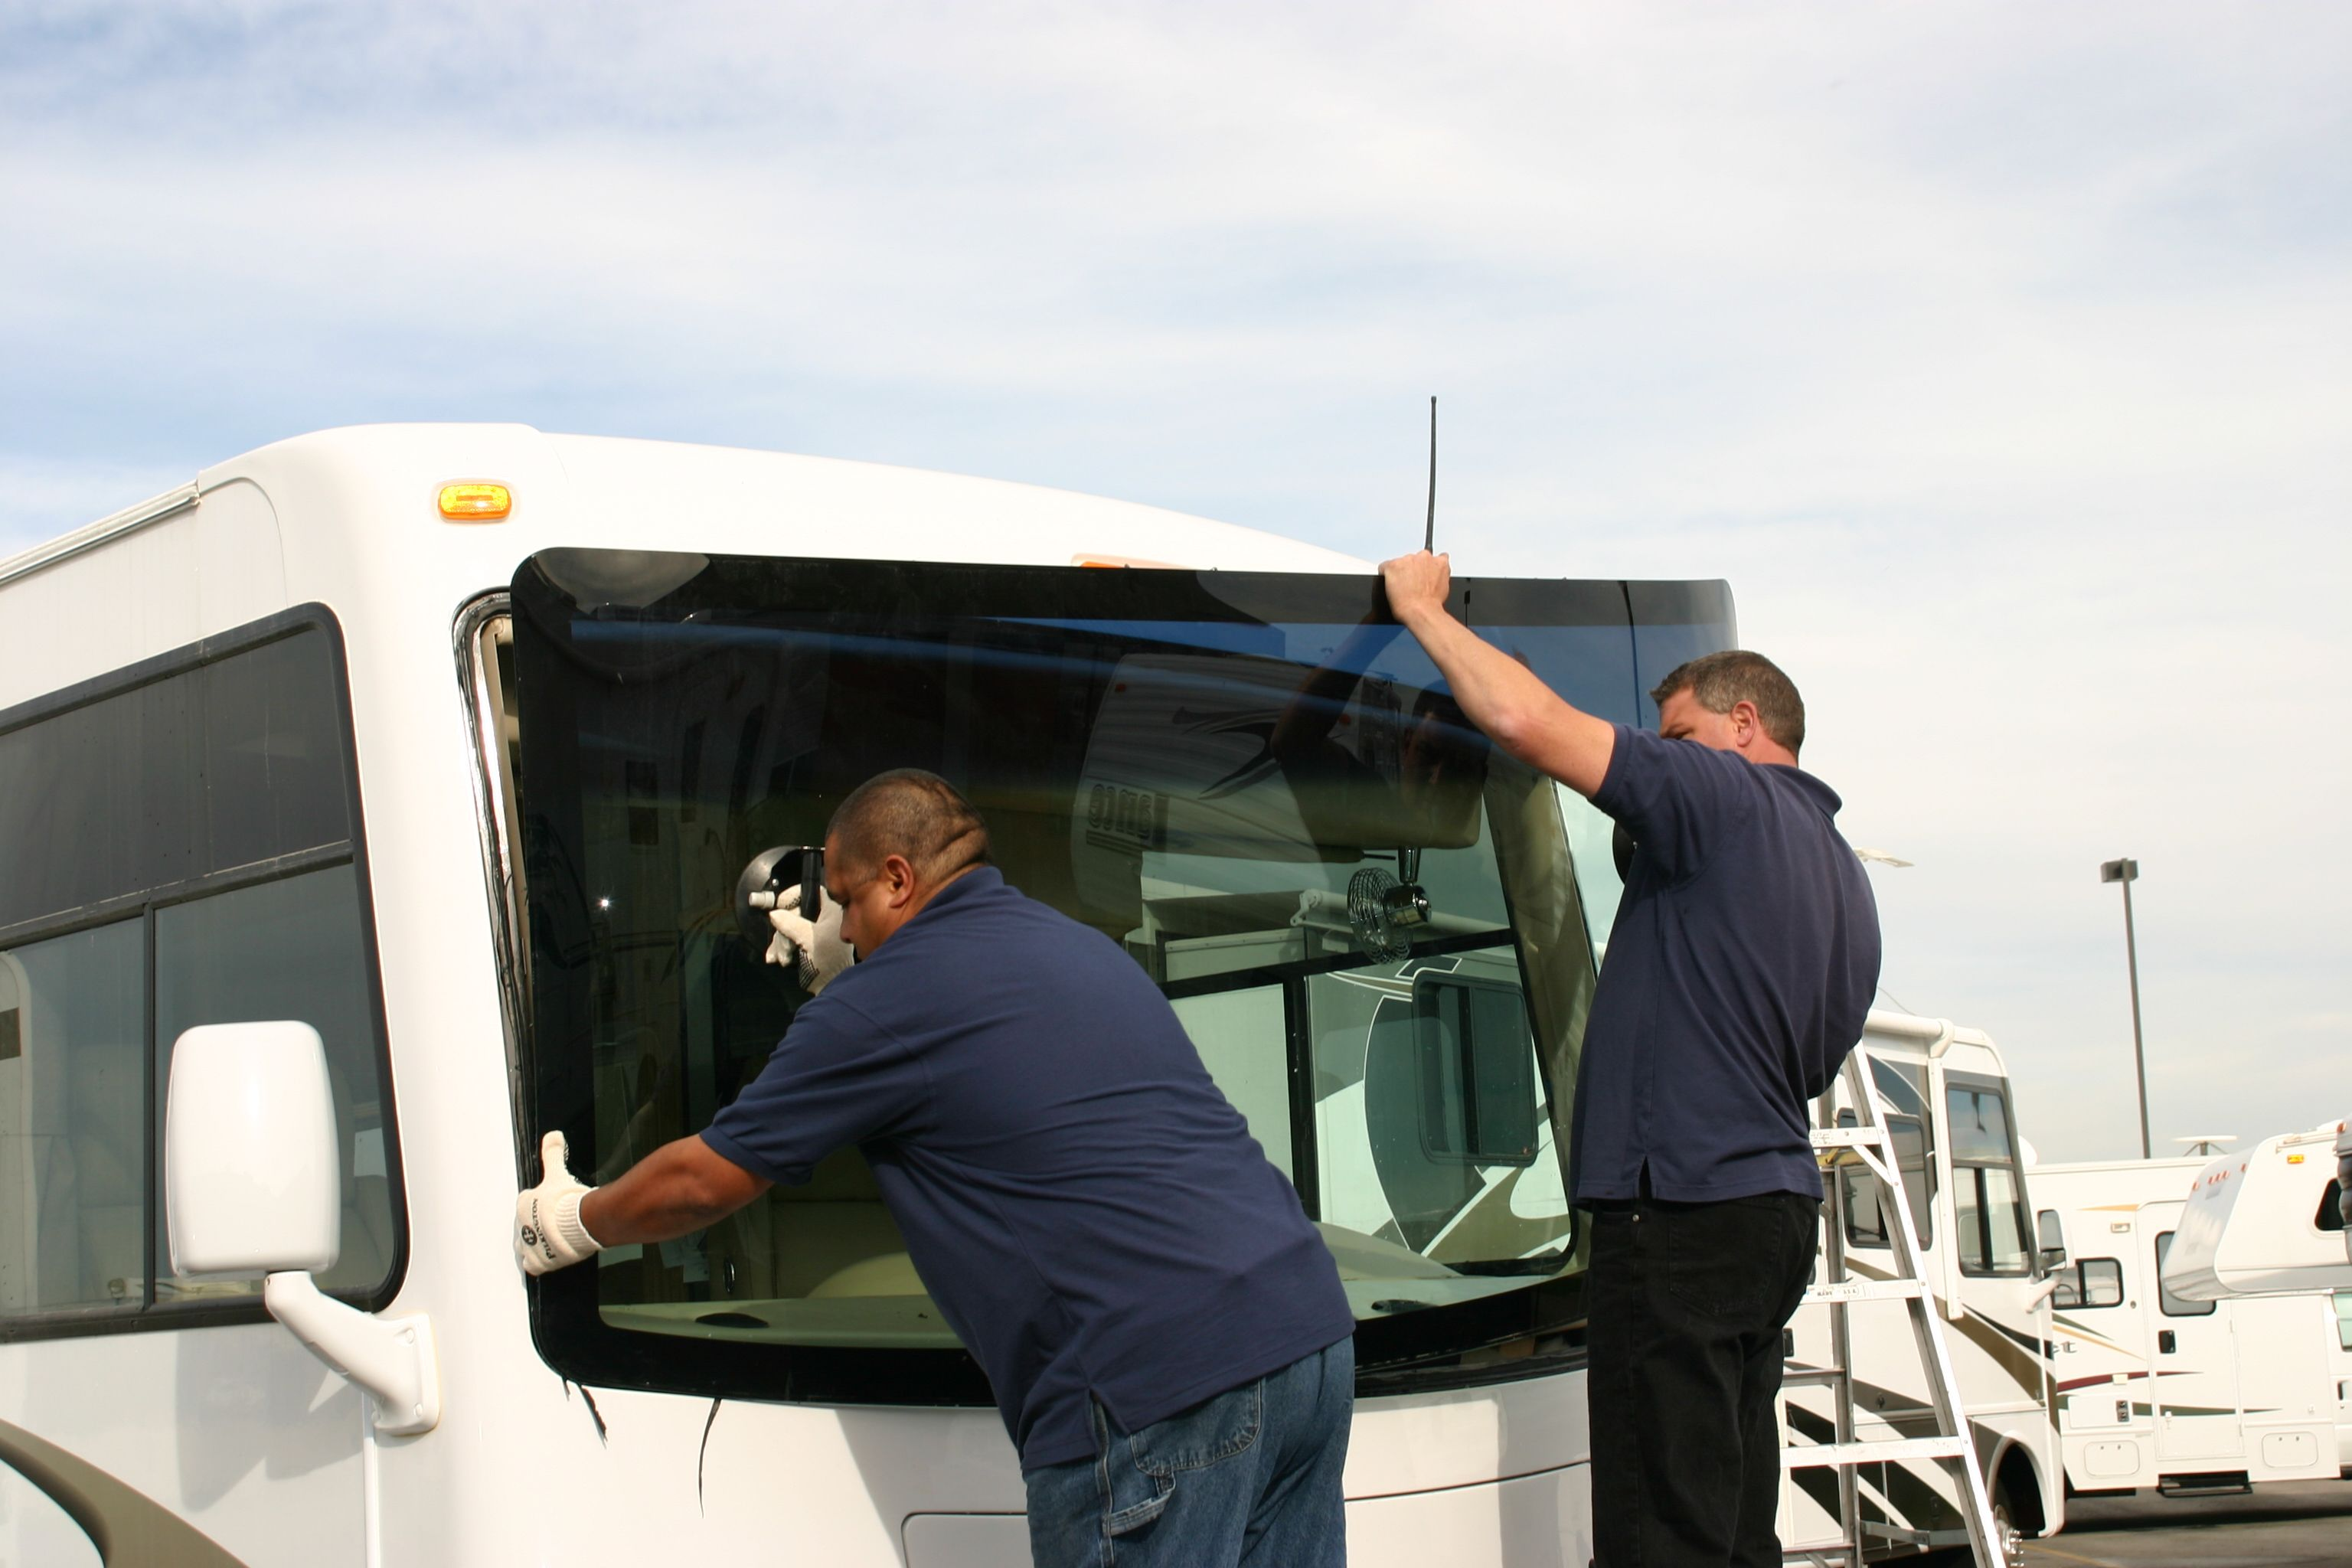 Motorhome windshield replacement in boise idaho by nomad glass call motorhome windshield replacement in boise idaho by nomad glass call boise rv glass boise motorhome windshield replacement publicscrutiny Choice Image